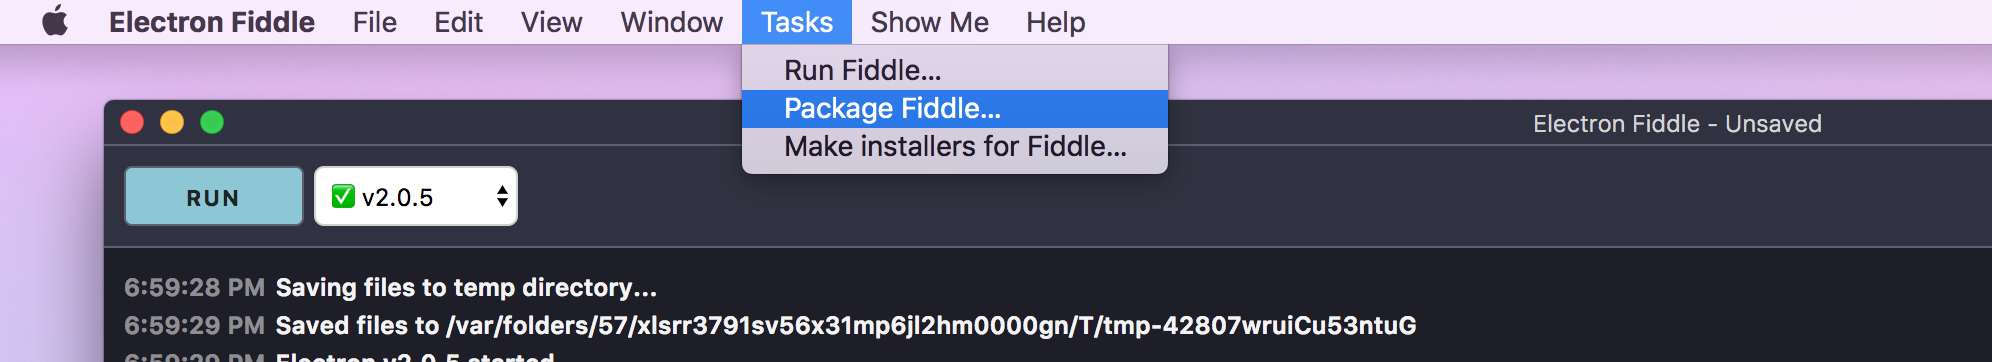 Screenshot of Electron Fiddle Compile And Package Menu